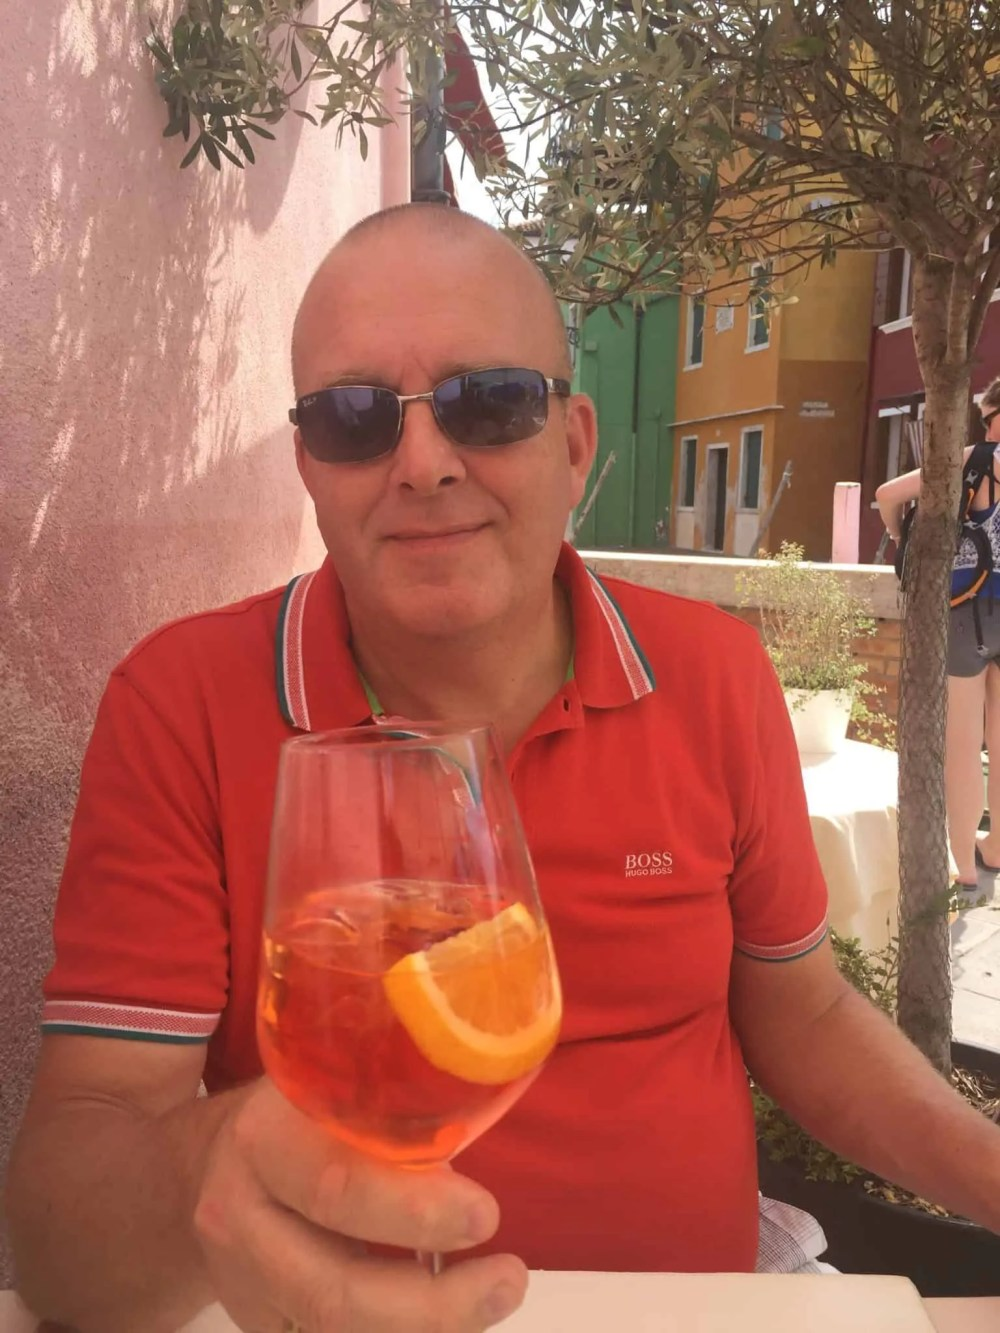 Best time to visit Venice, 3 days Venice itinerary, free things to do in Venice, Burano island, aperol spritz